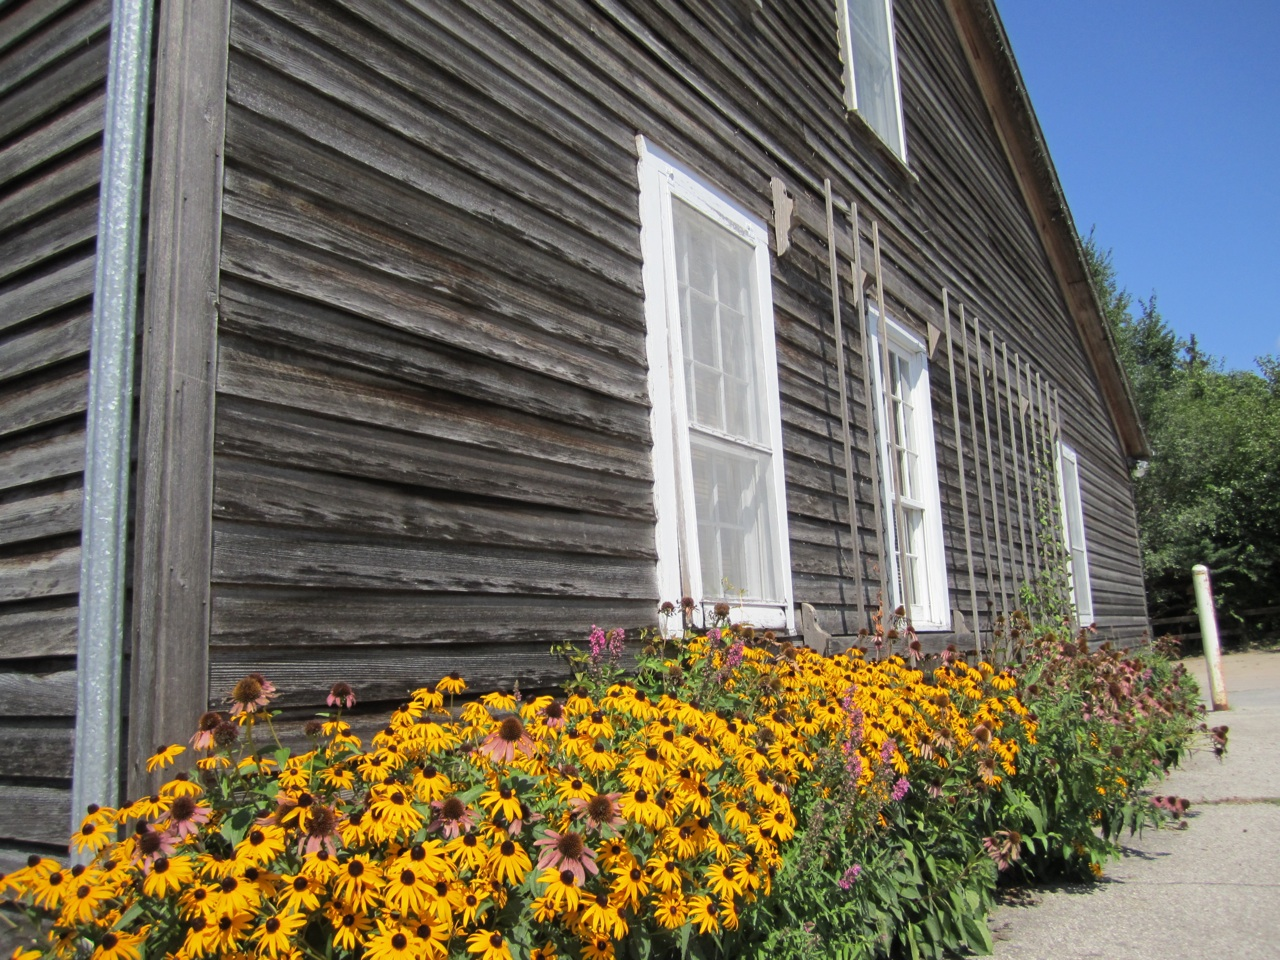 Nice Flower Garden On The Side Of A House.  Note The Grape Vine Trellis On The Side, Which Is On Every House.